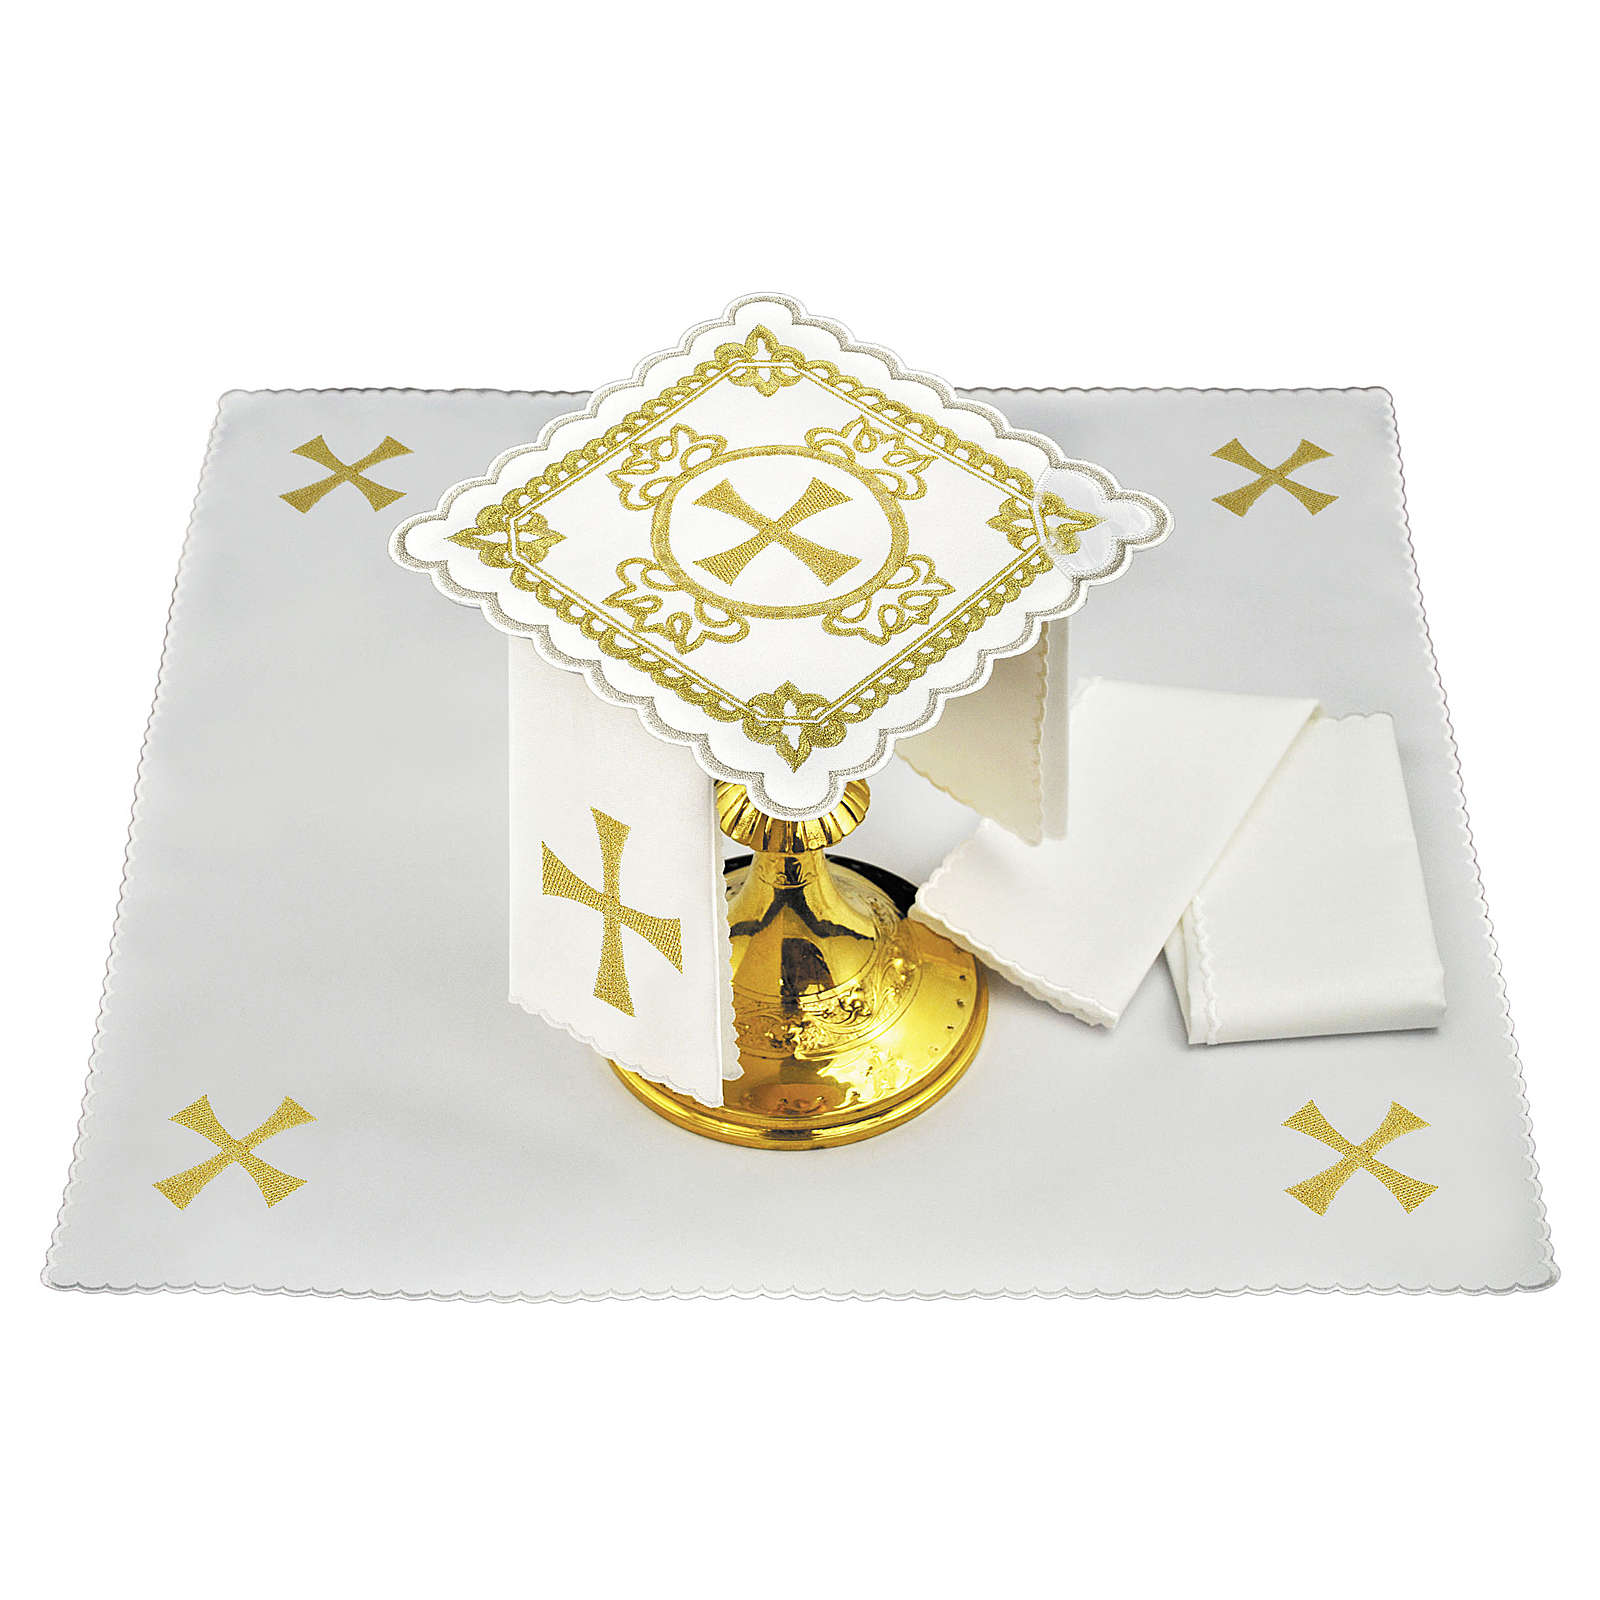 Church cloth with cross, golden embroideries 4